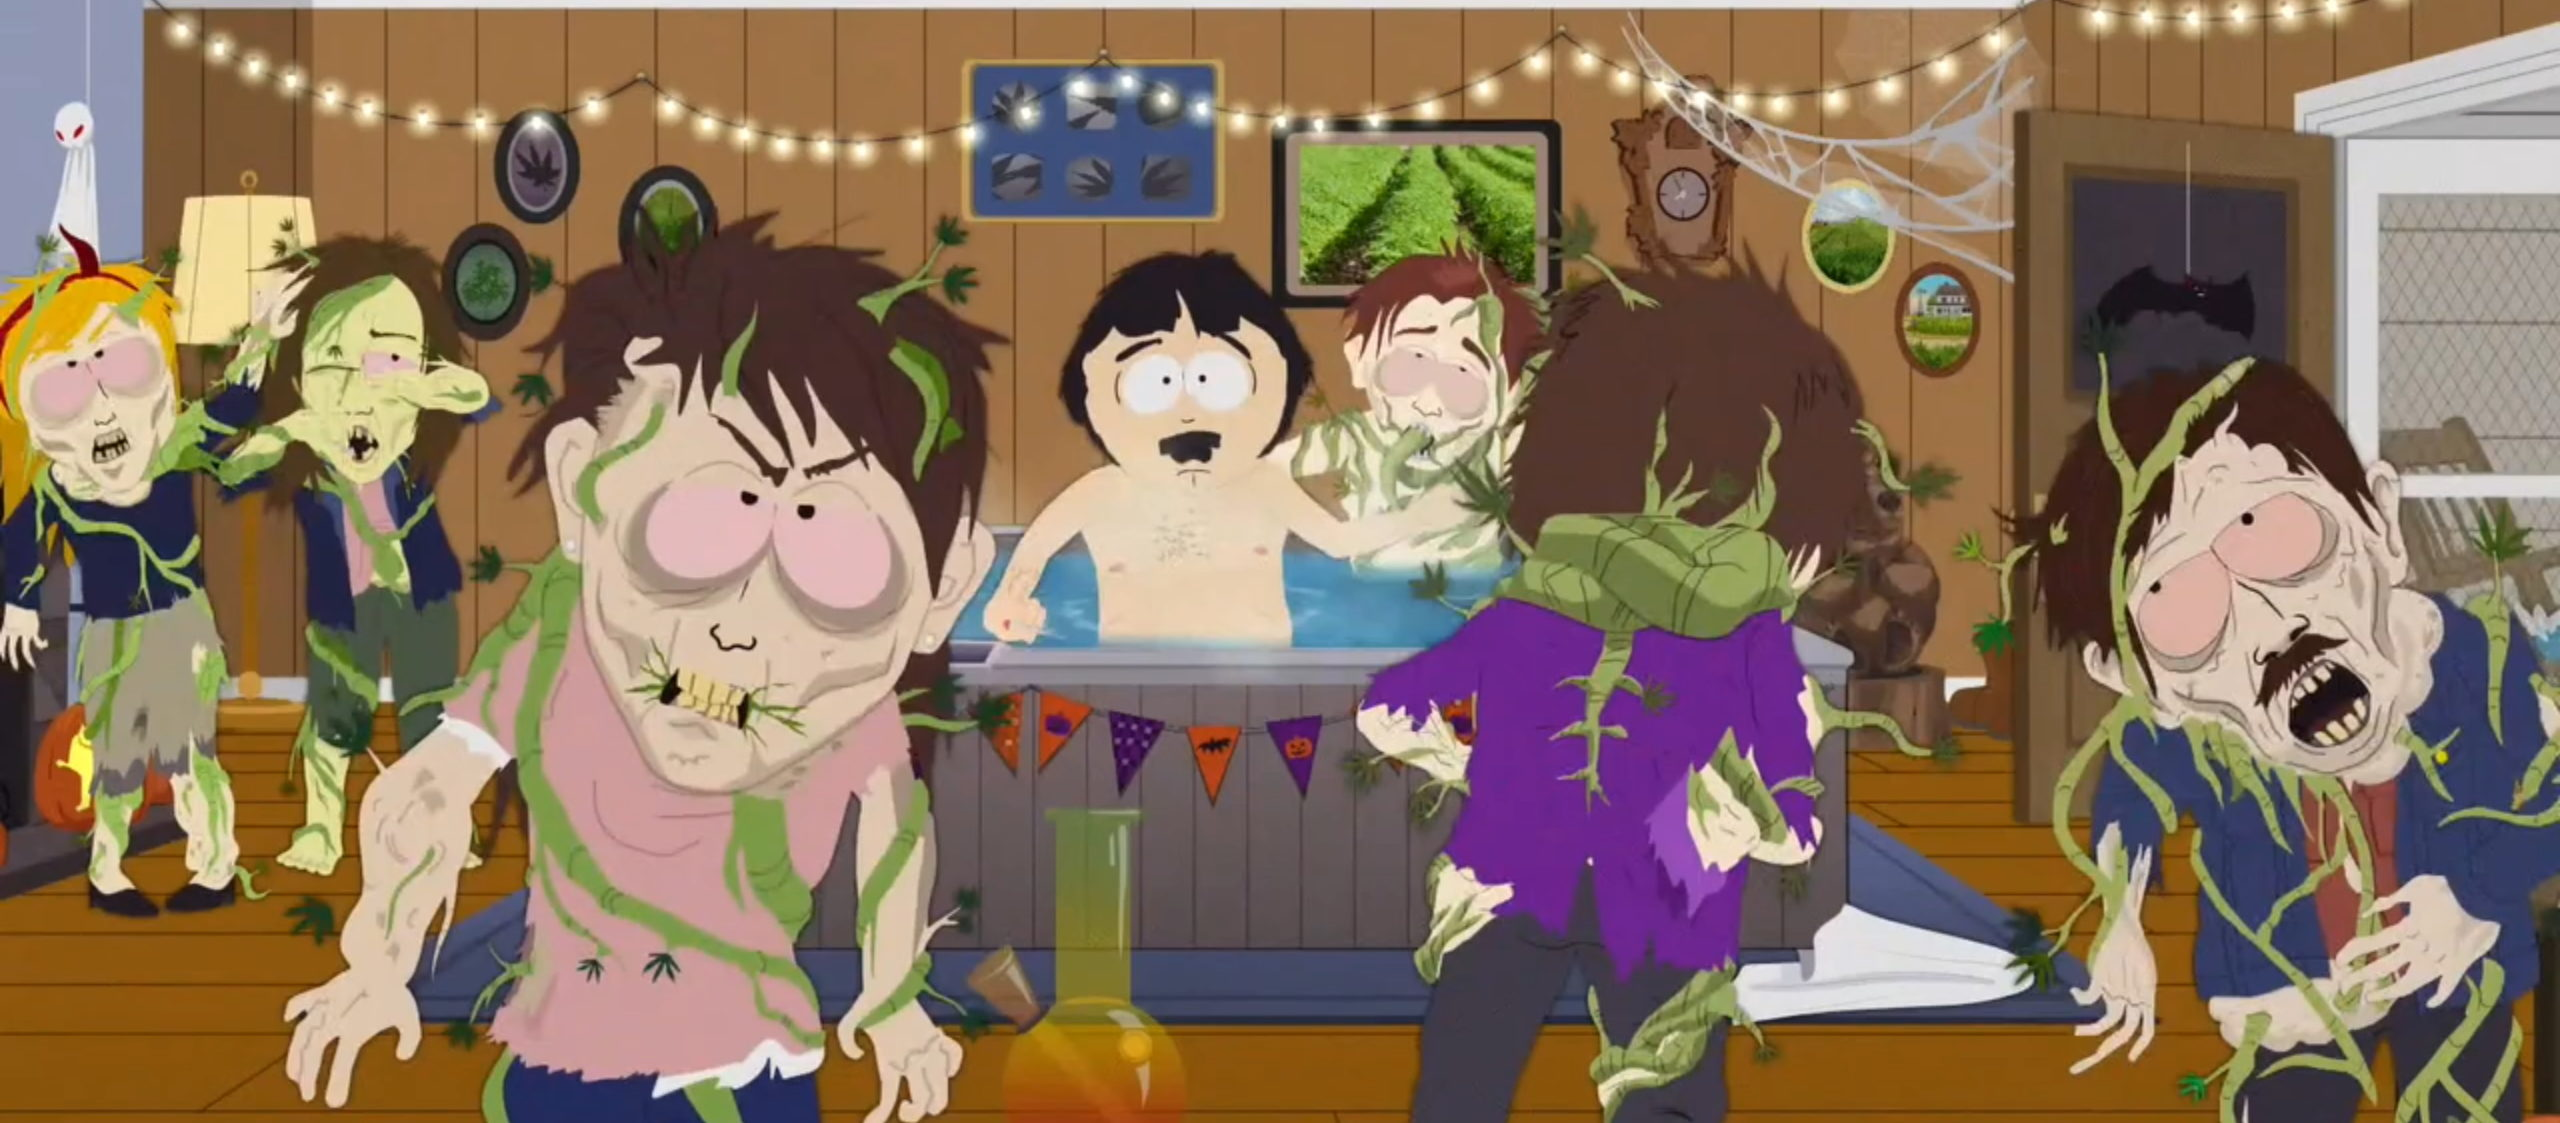 South Park Season 23 Episode 5 Review Tegridy Farms Halloween Special Den Of Geek A description of tropes appearing in how to keep a mummy. south park season 23 episode 5 review